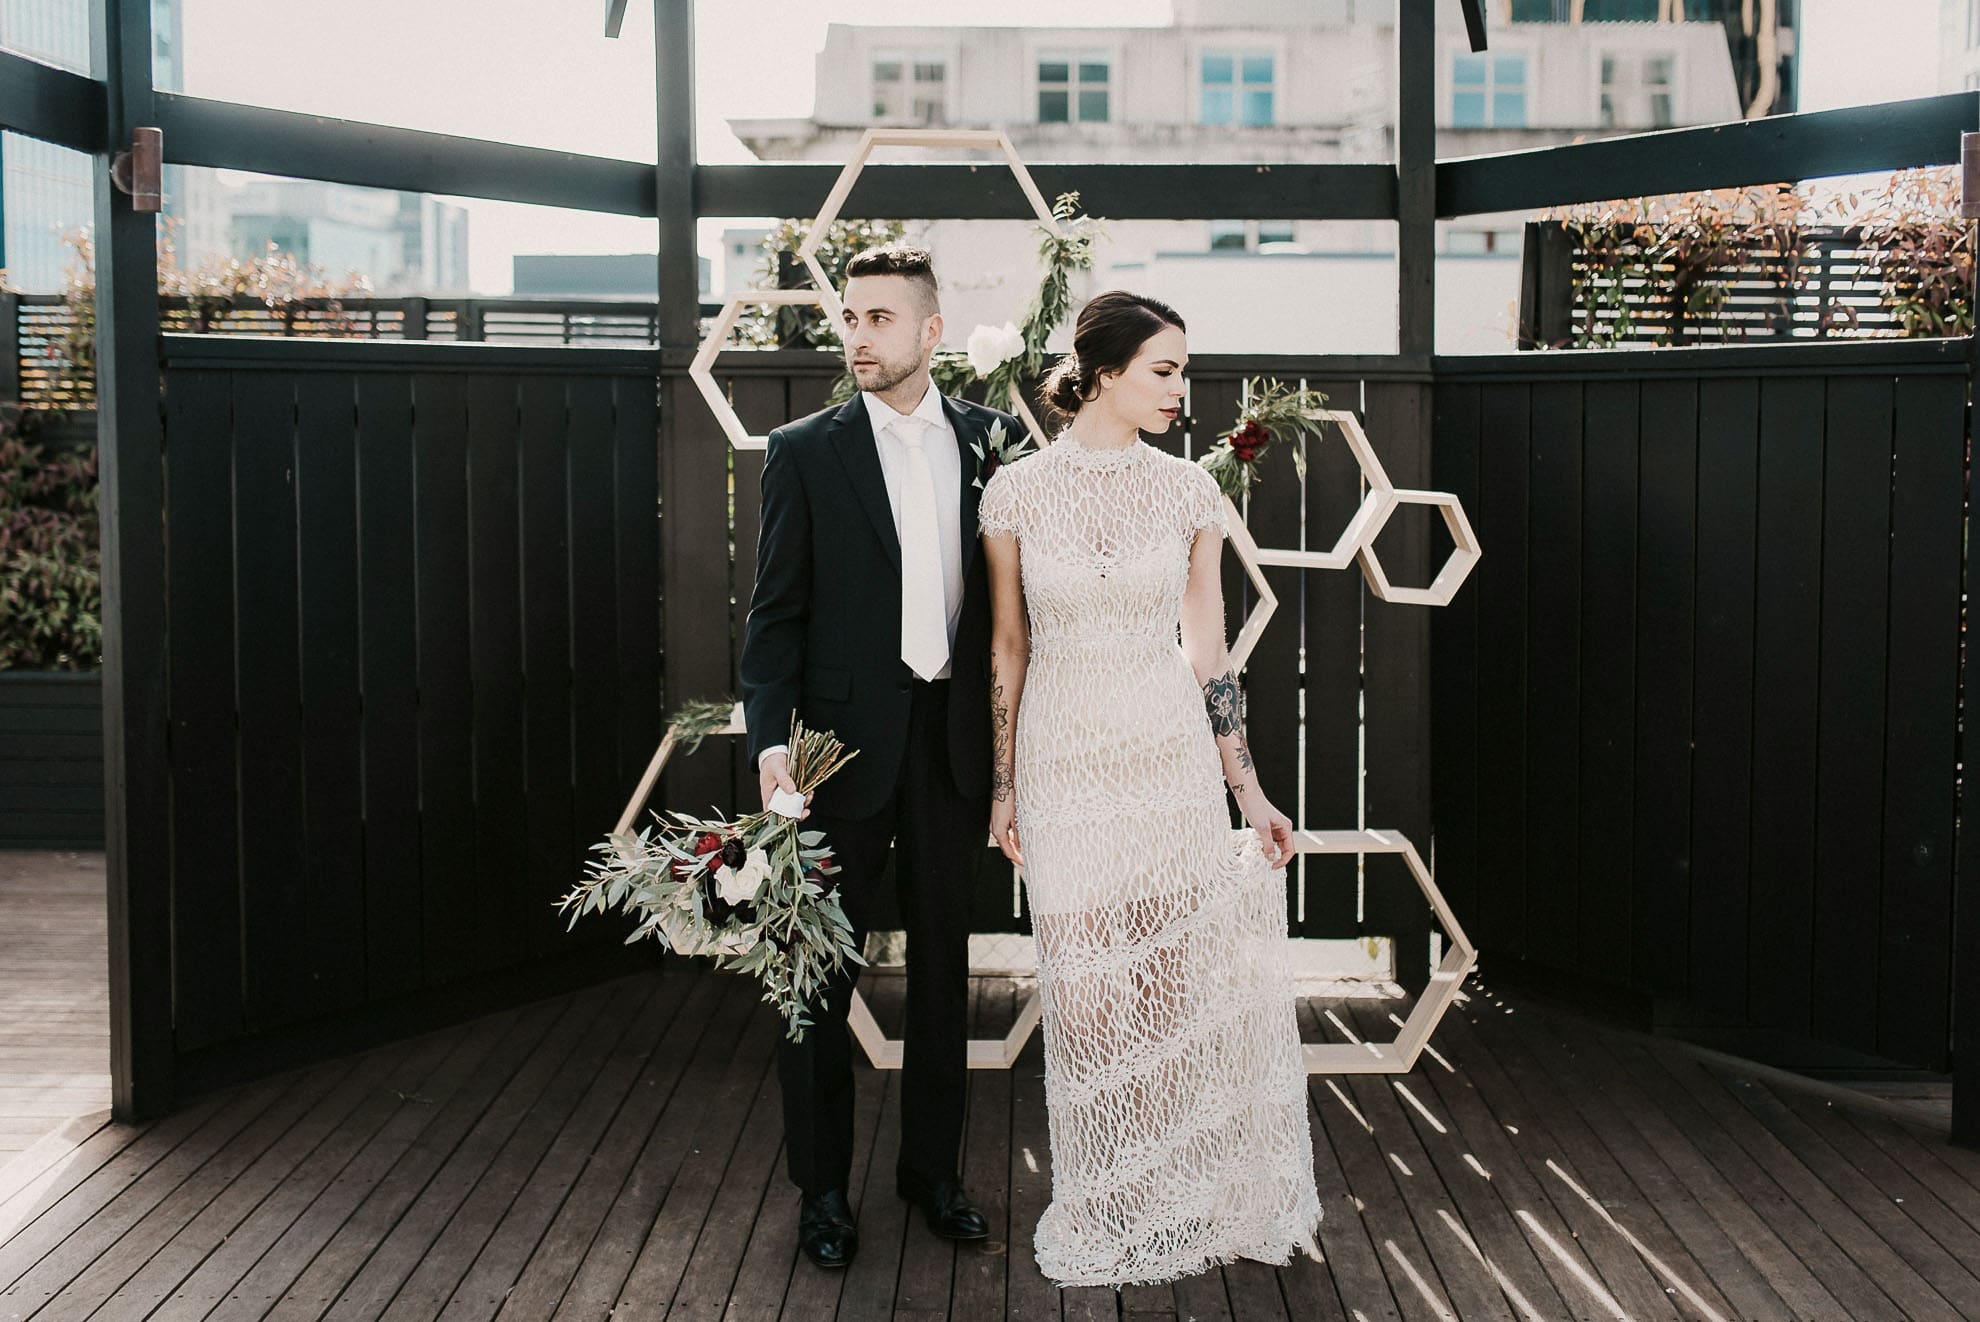 Vinka Design Envy Events Style Shoot - Hand-Made Bridal Gowns and Wedding Dresses in Auckland, New Zealand